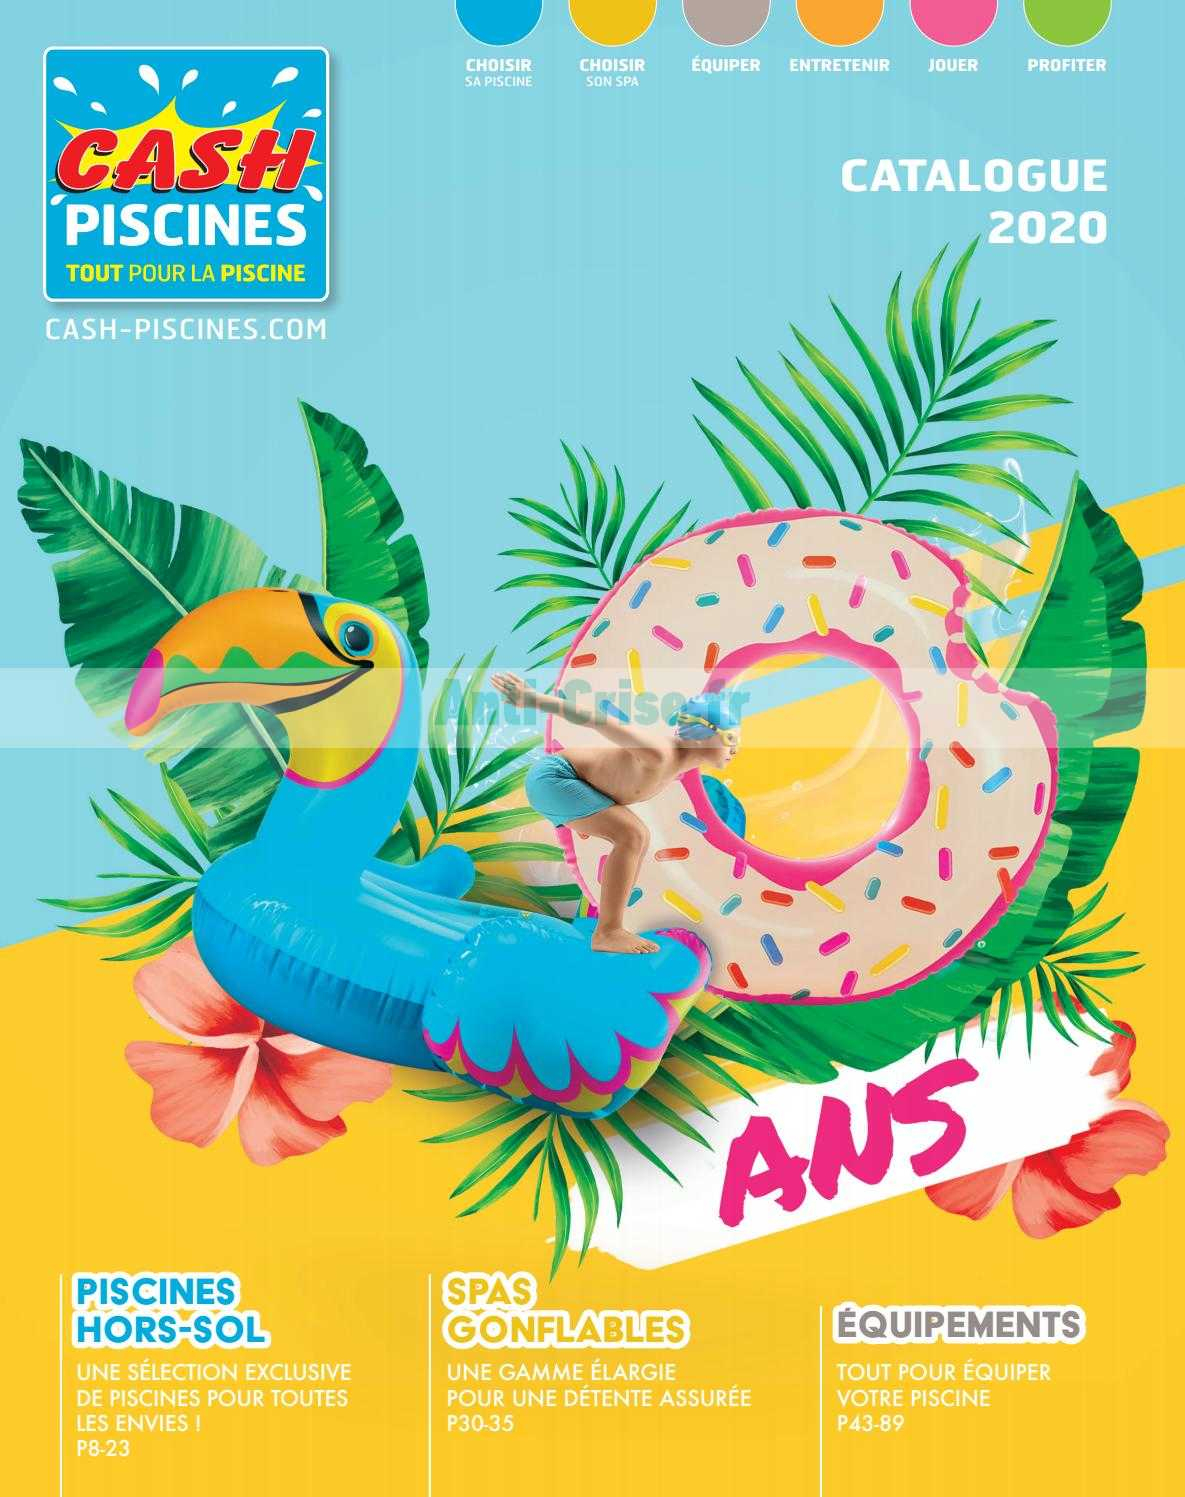 Catalogue Cash Piscines Du 01 Janvier Au 31 Décembre 2020 ... dedans Cash Piscine Catalogue